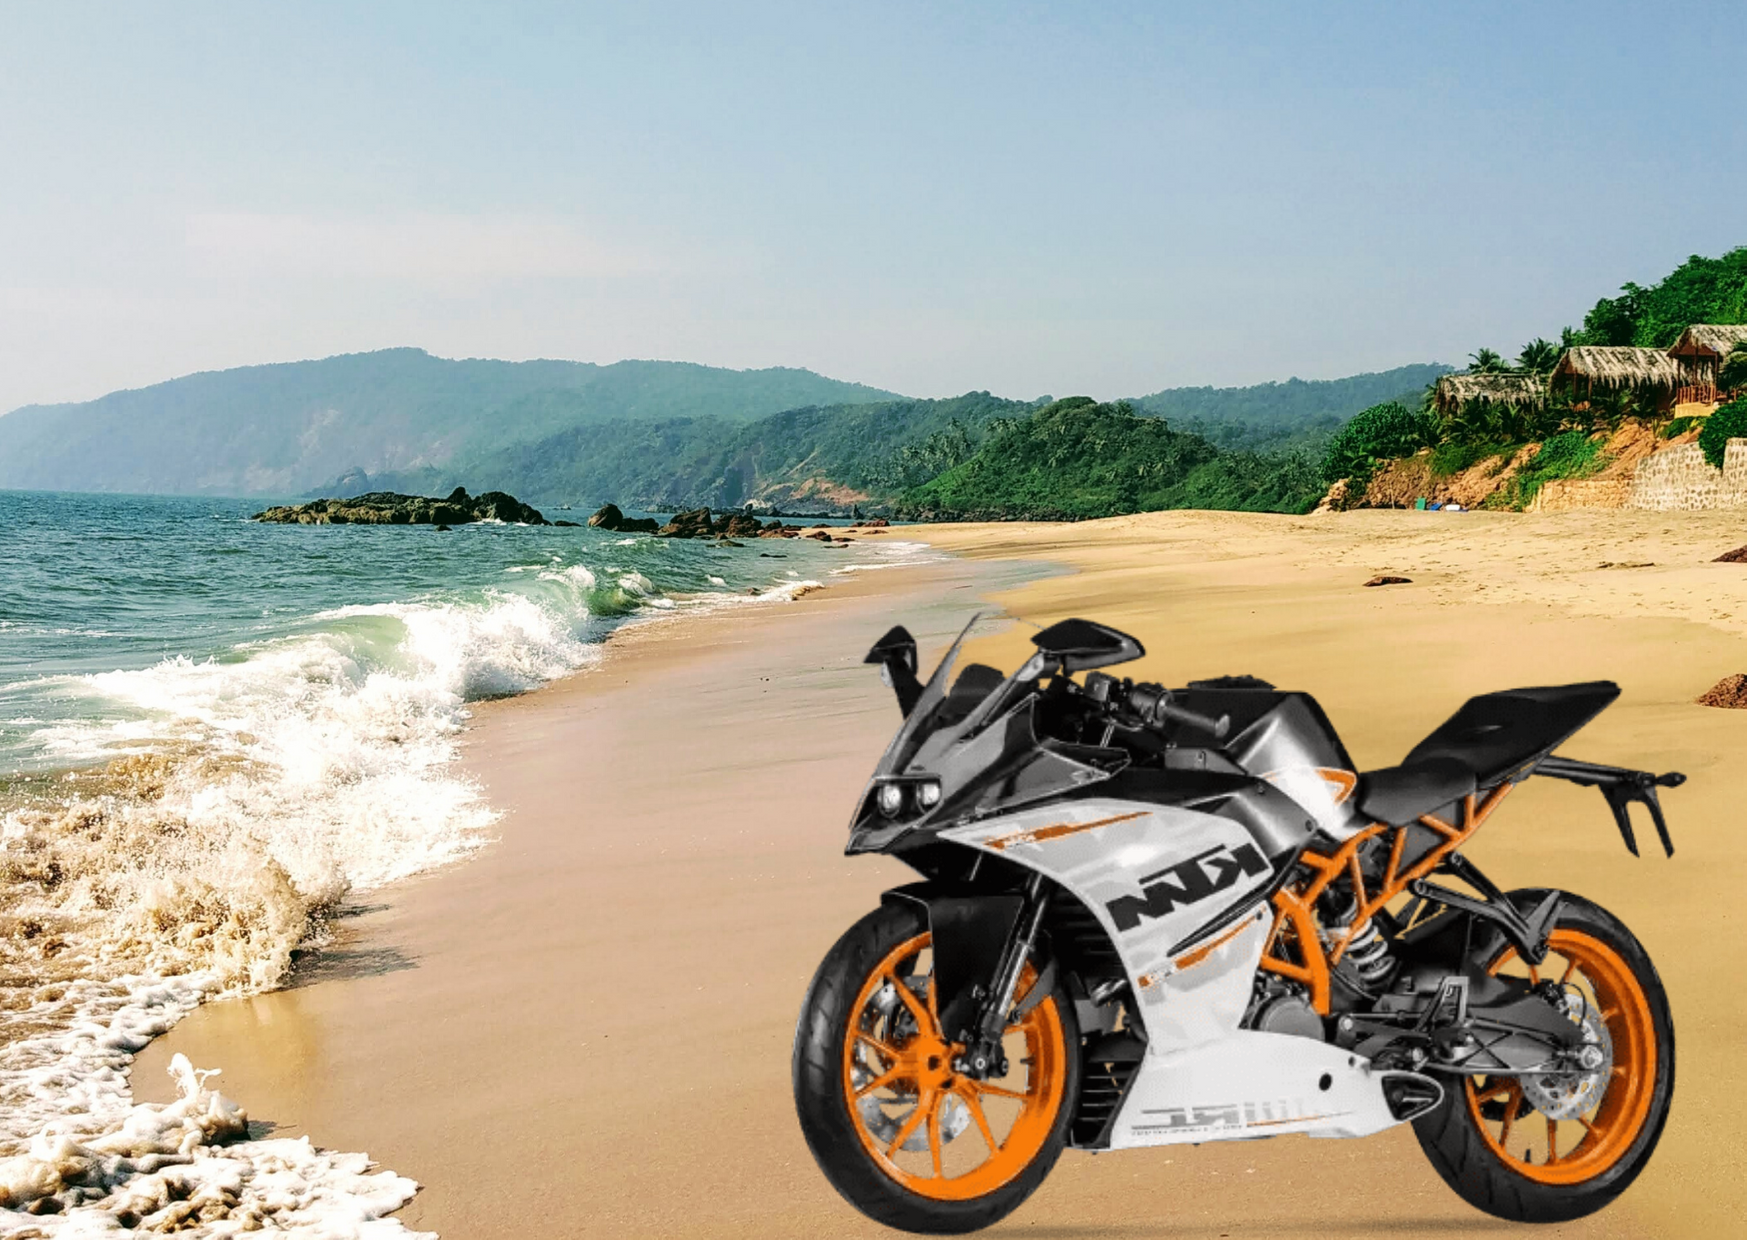 Get Your Bike Hire In Goa And Visit All The Nooks And Corners